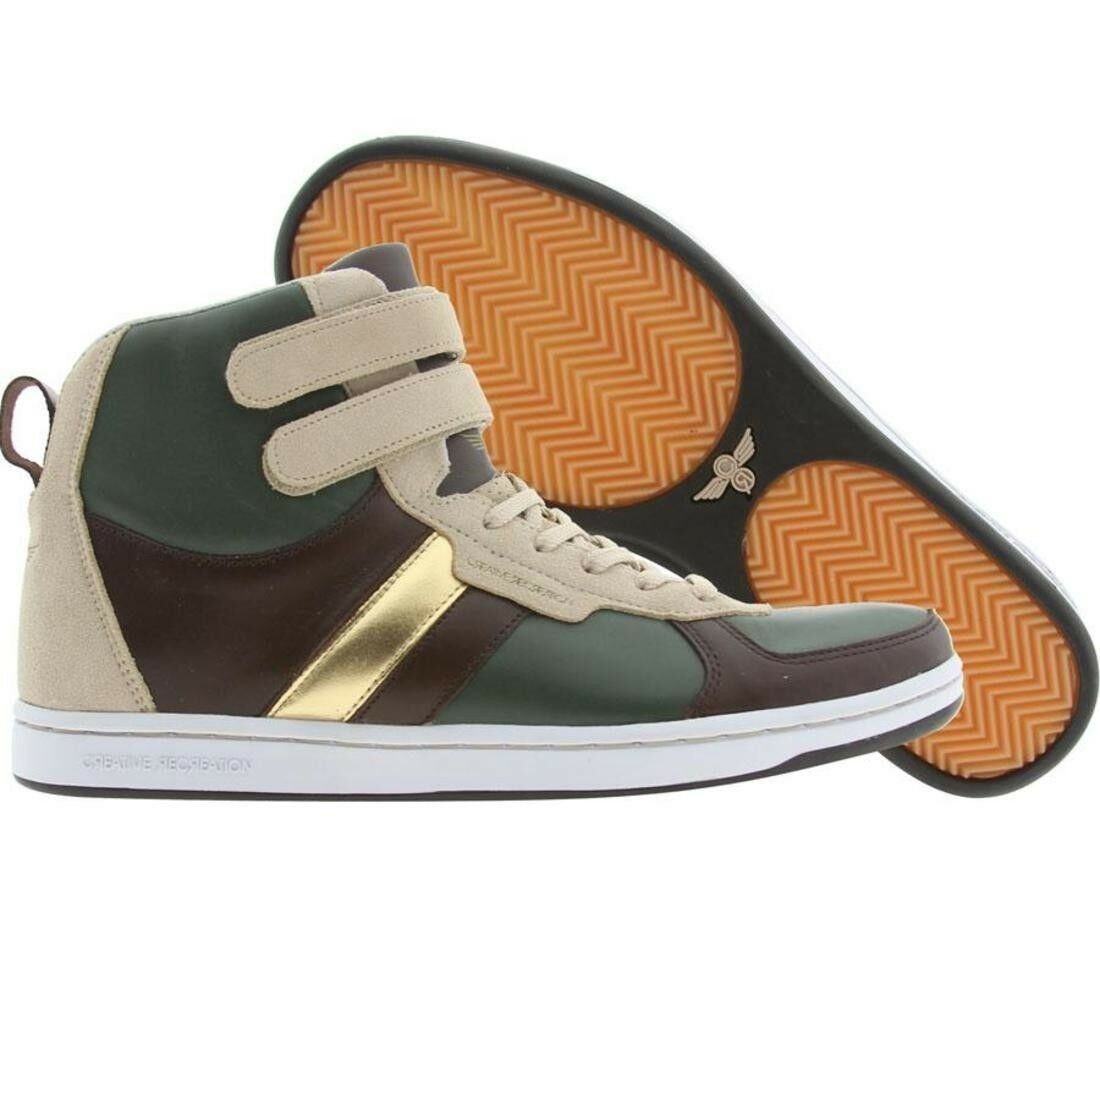 .99 Creative Recreation Dicoco (forest / brown / khaki / gold) 3948-FBKGD Scarpe classiche da uomo